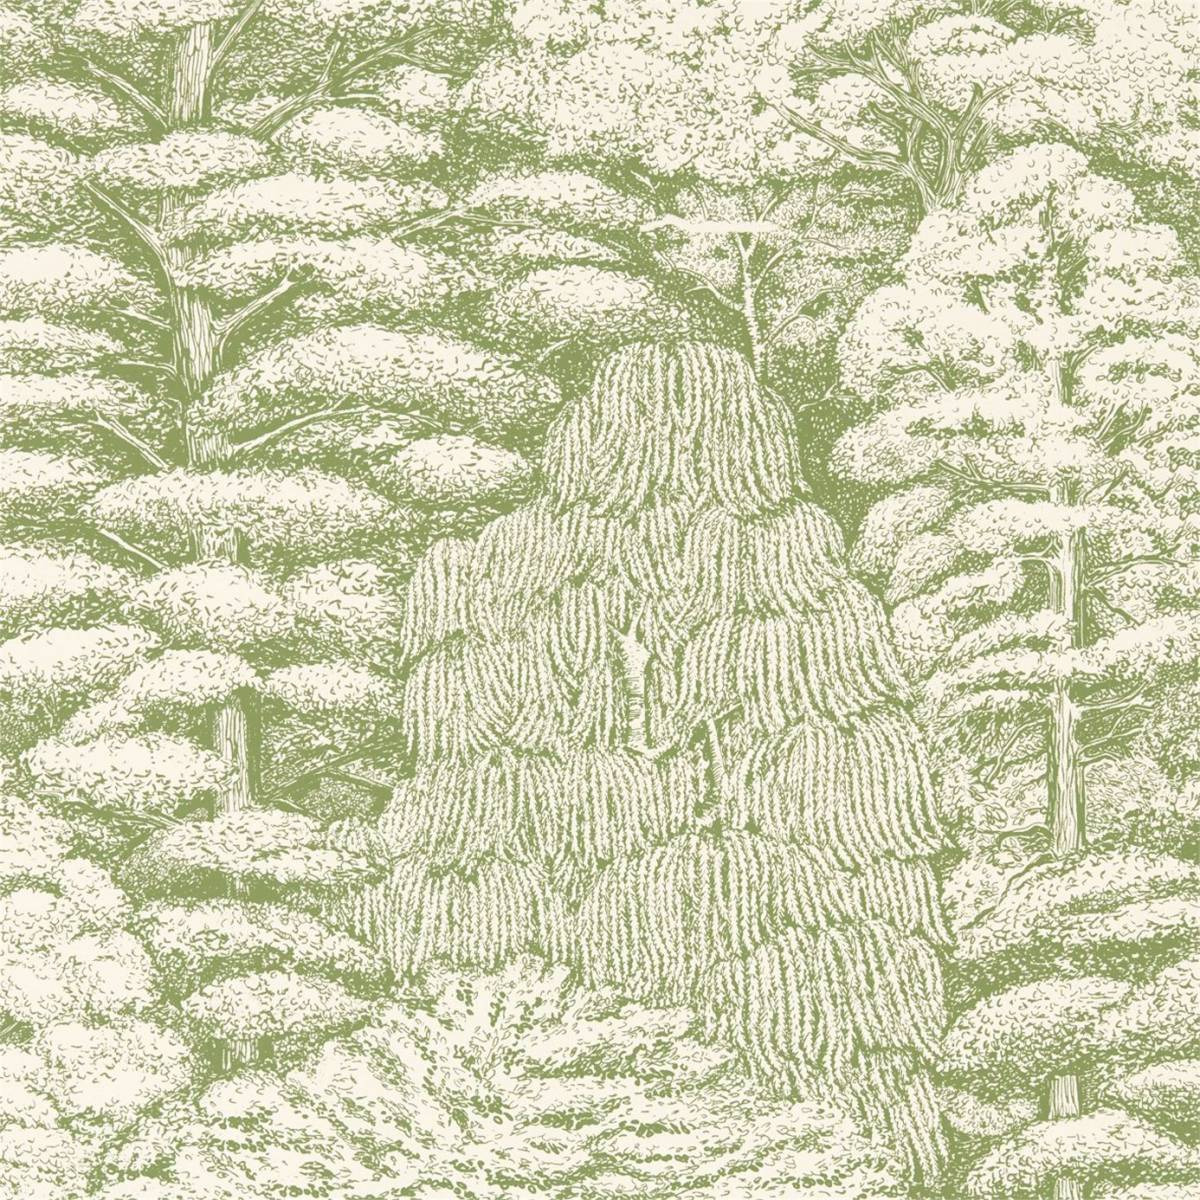 xpx Green Toile Wallpaper